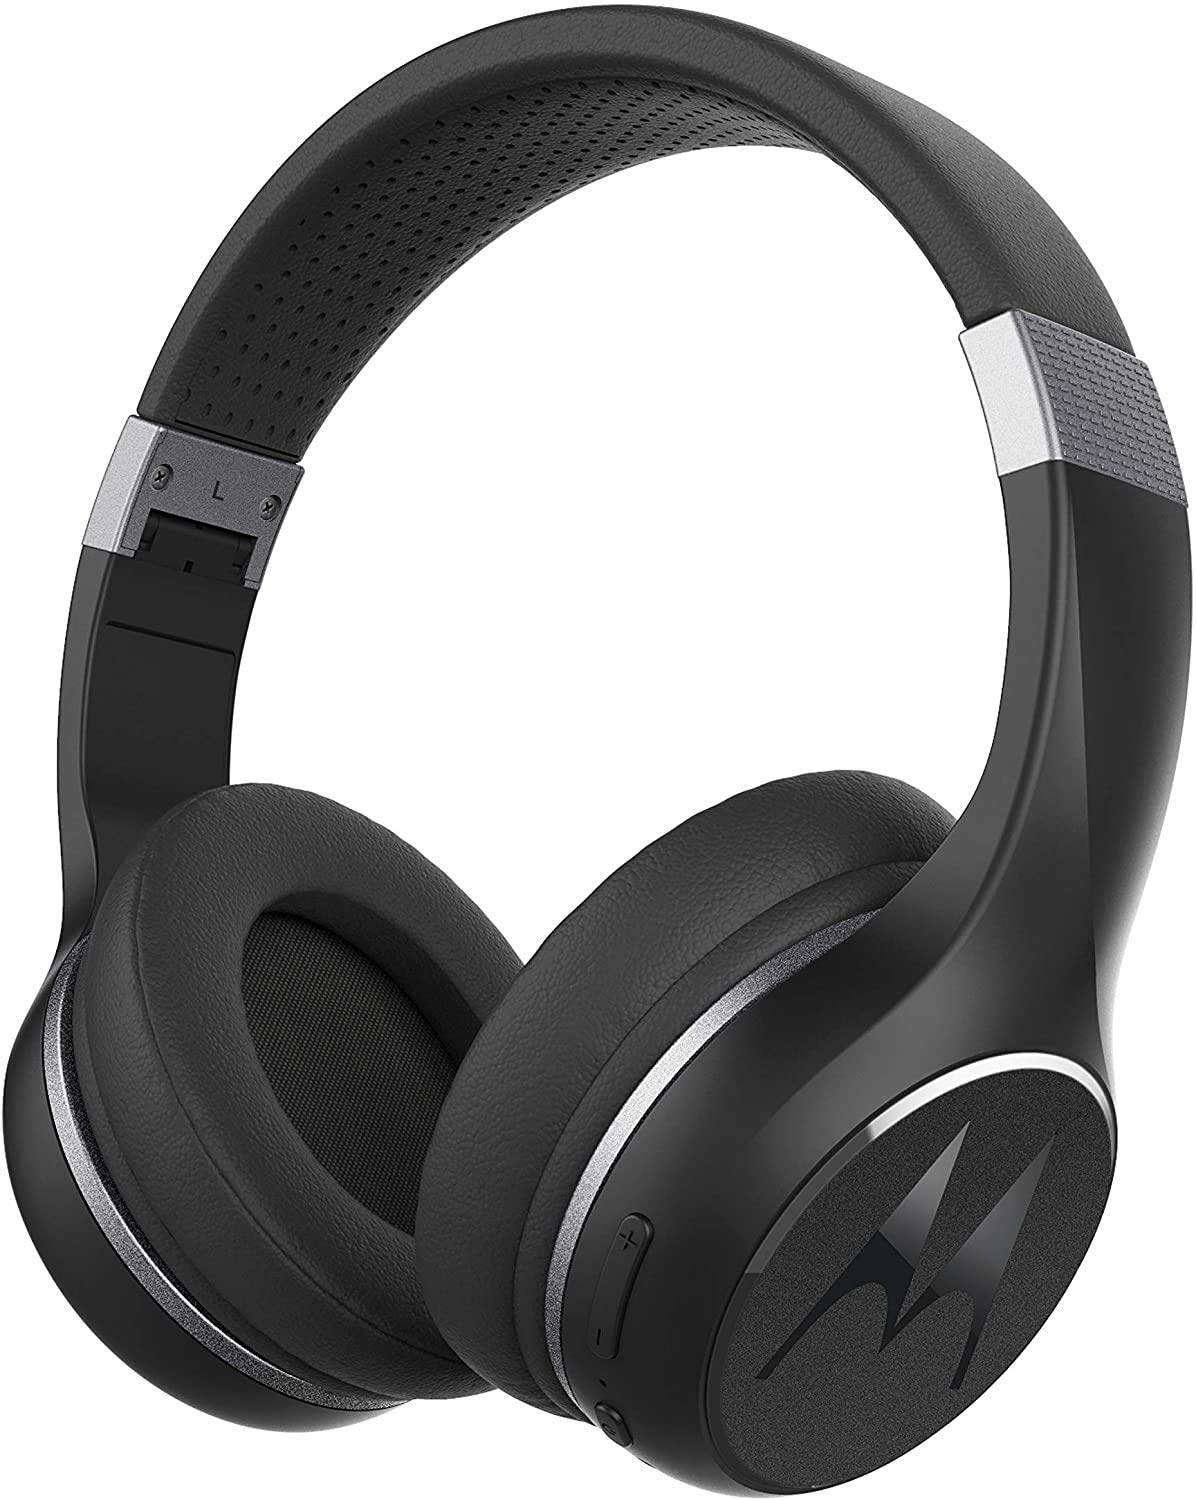 Motorola Escape 220 Wireless Headphones: Best Features, Price